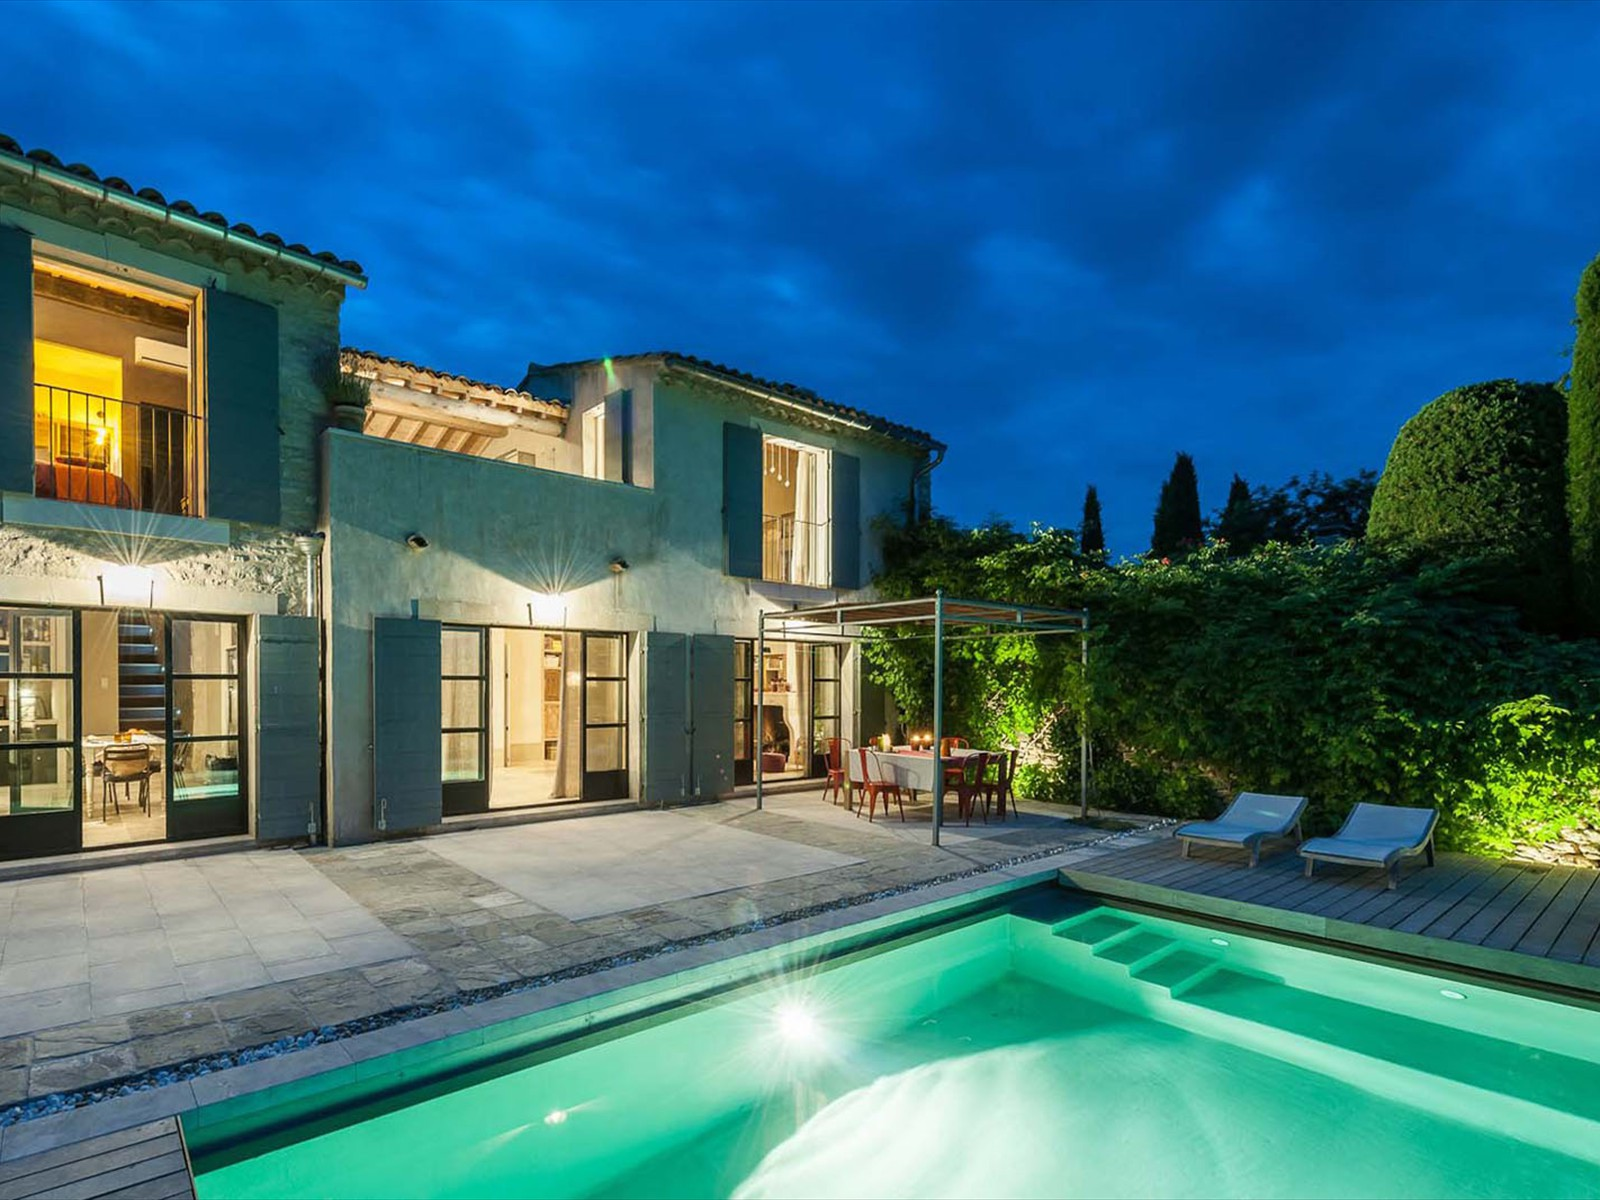 exclusive_rentals_provence_vacation_luxury_homes_holiday_rentals_mont_ventoux_luberon_01